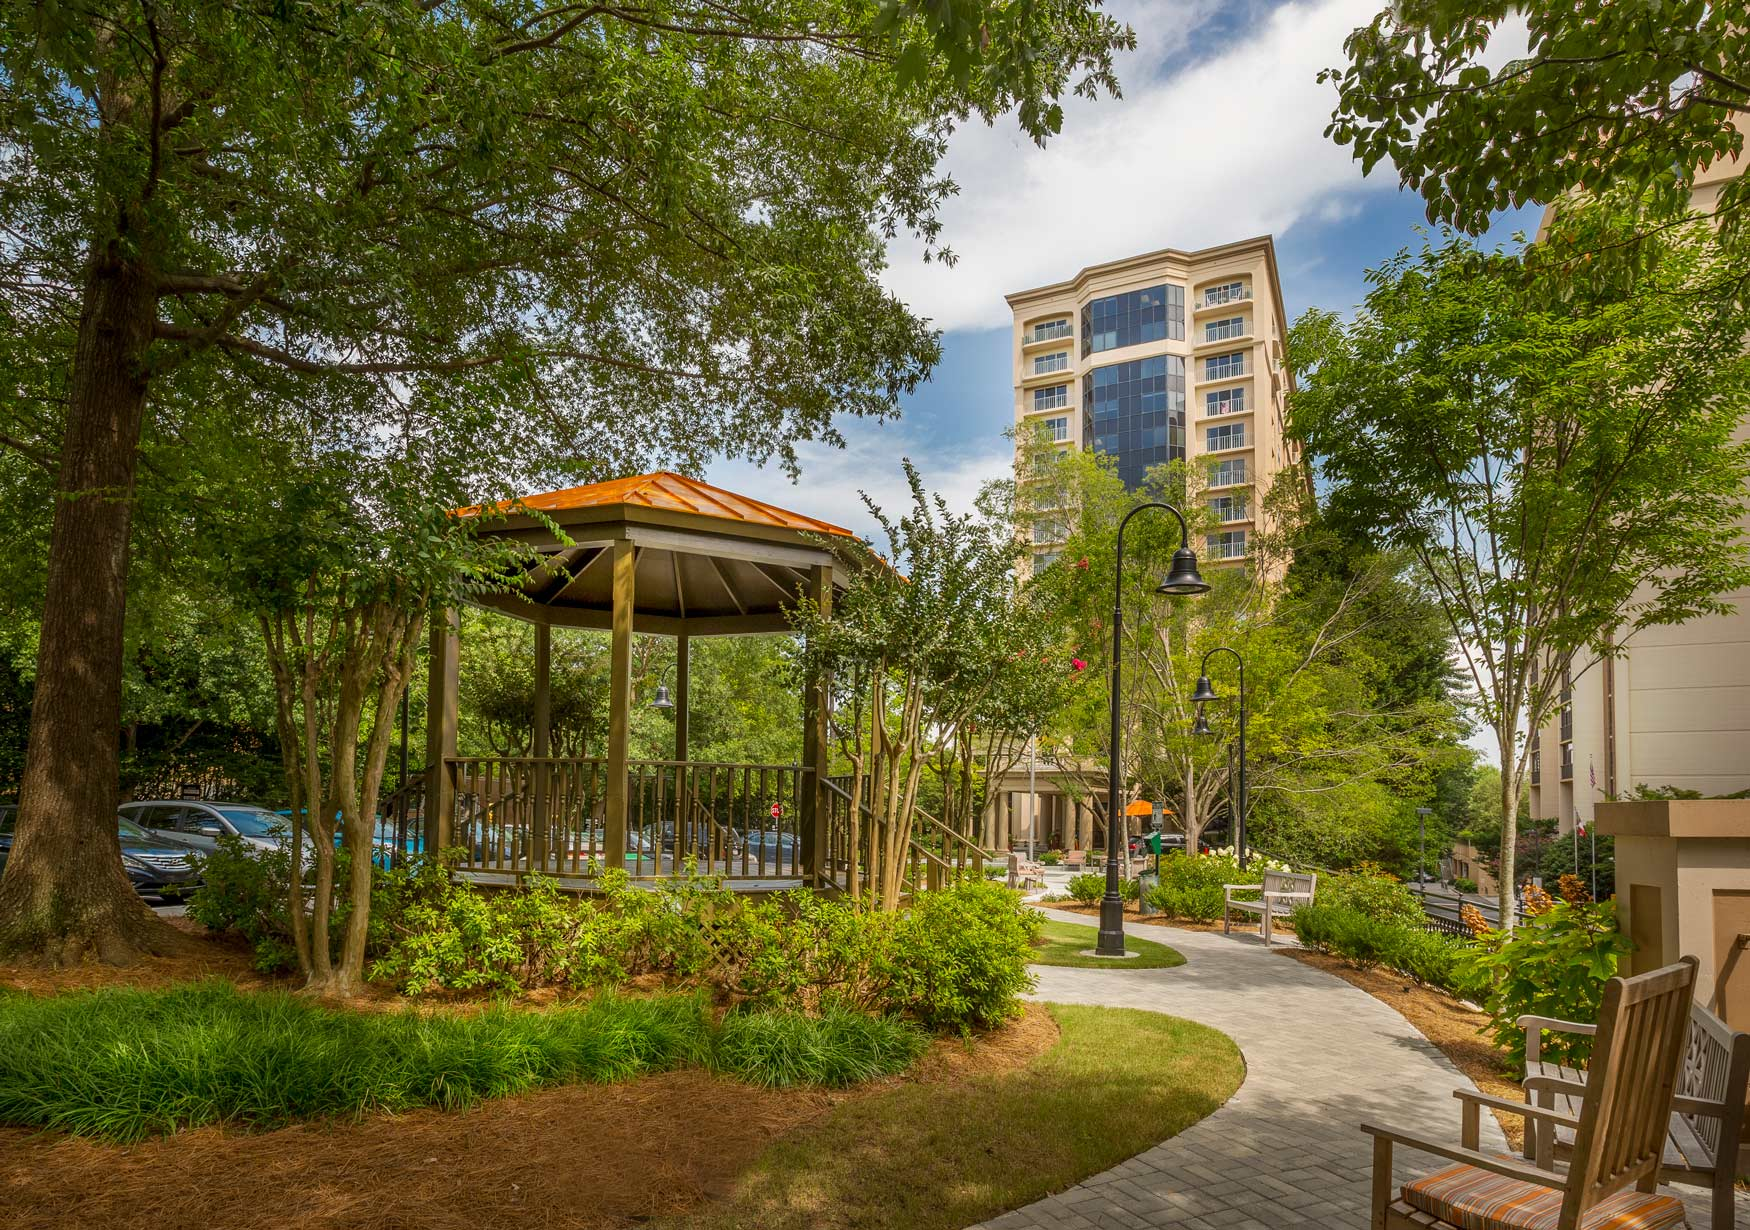 renaissance-on-peachtree-lush-outdoor-spaces